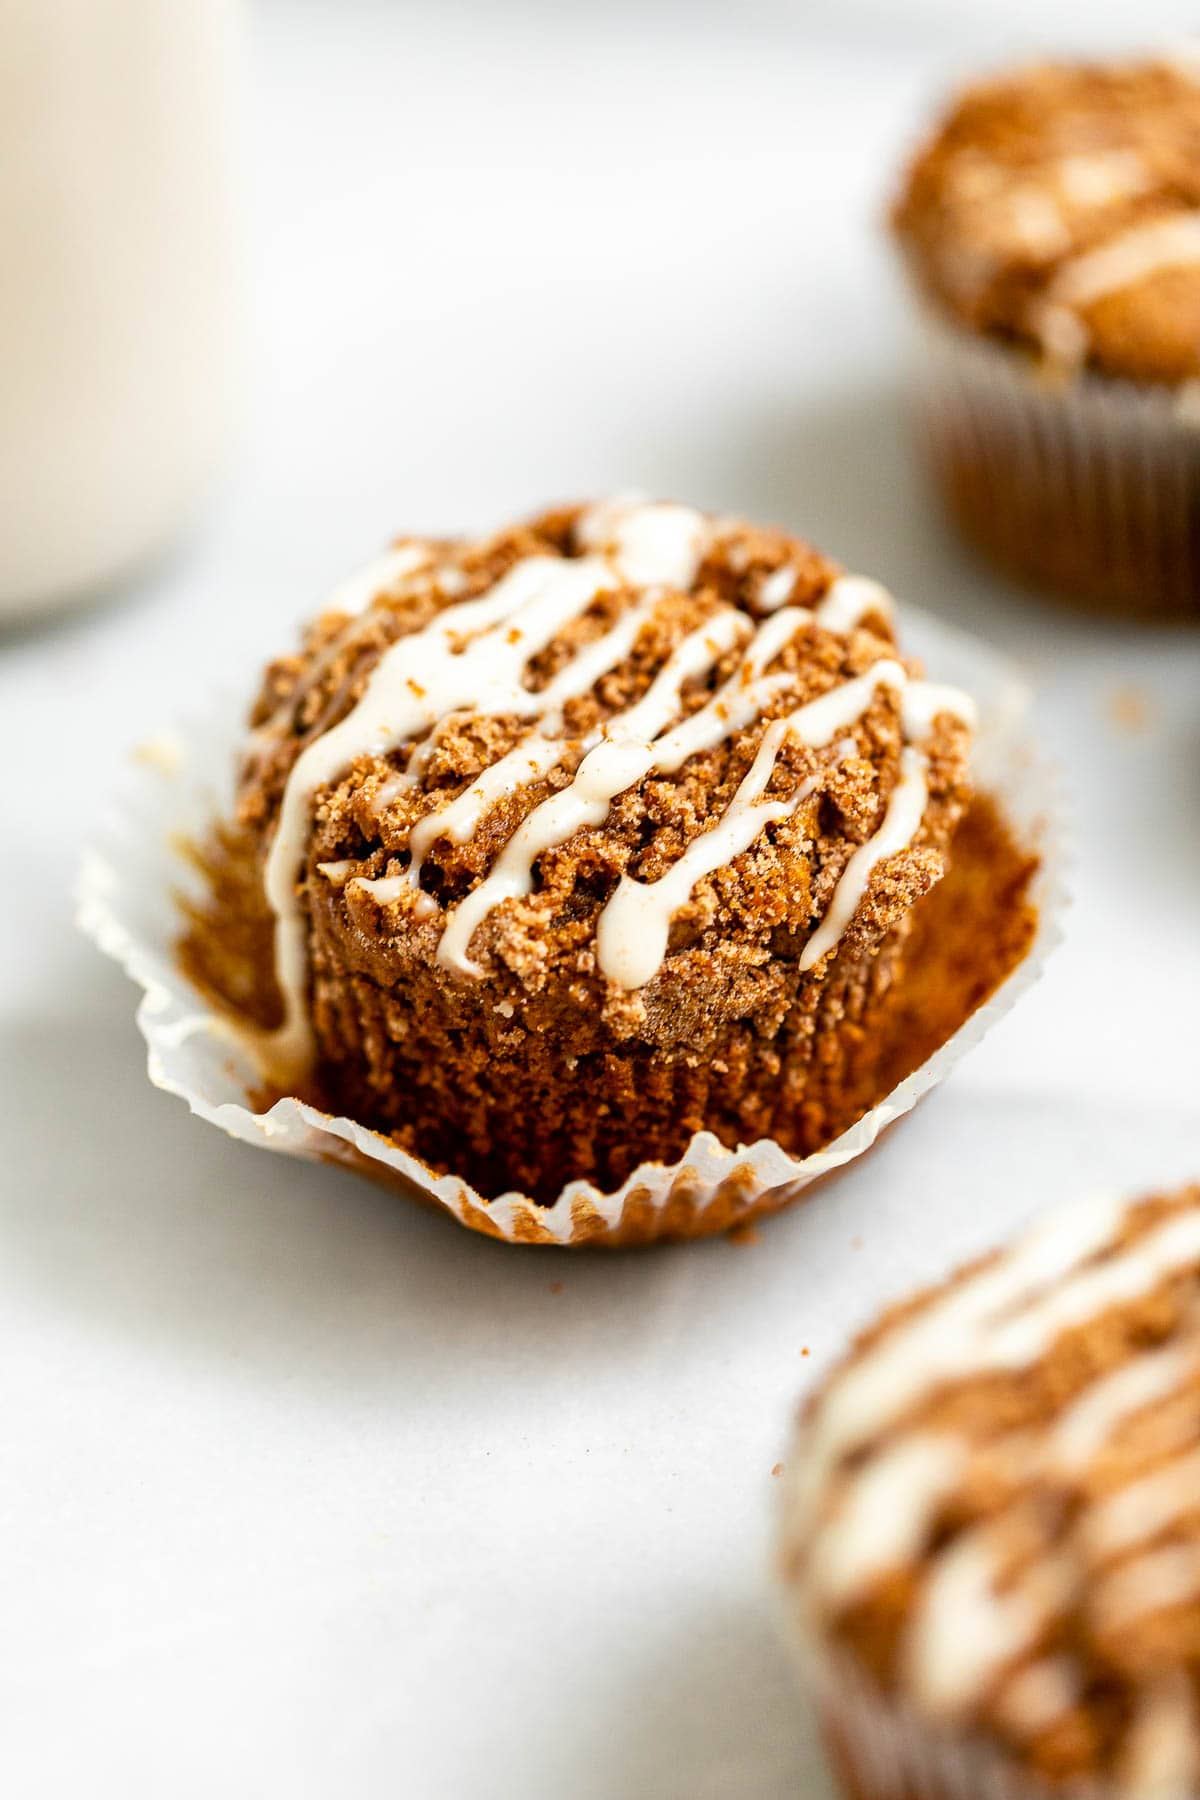 Gingerbread muffin with cinnamon streusel and maple glaze.